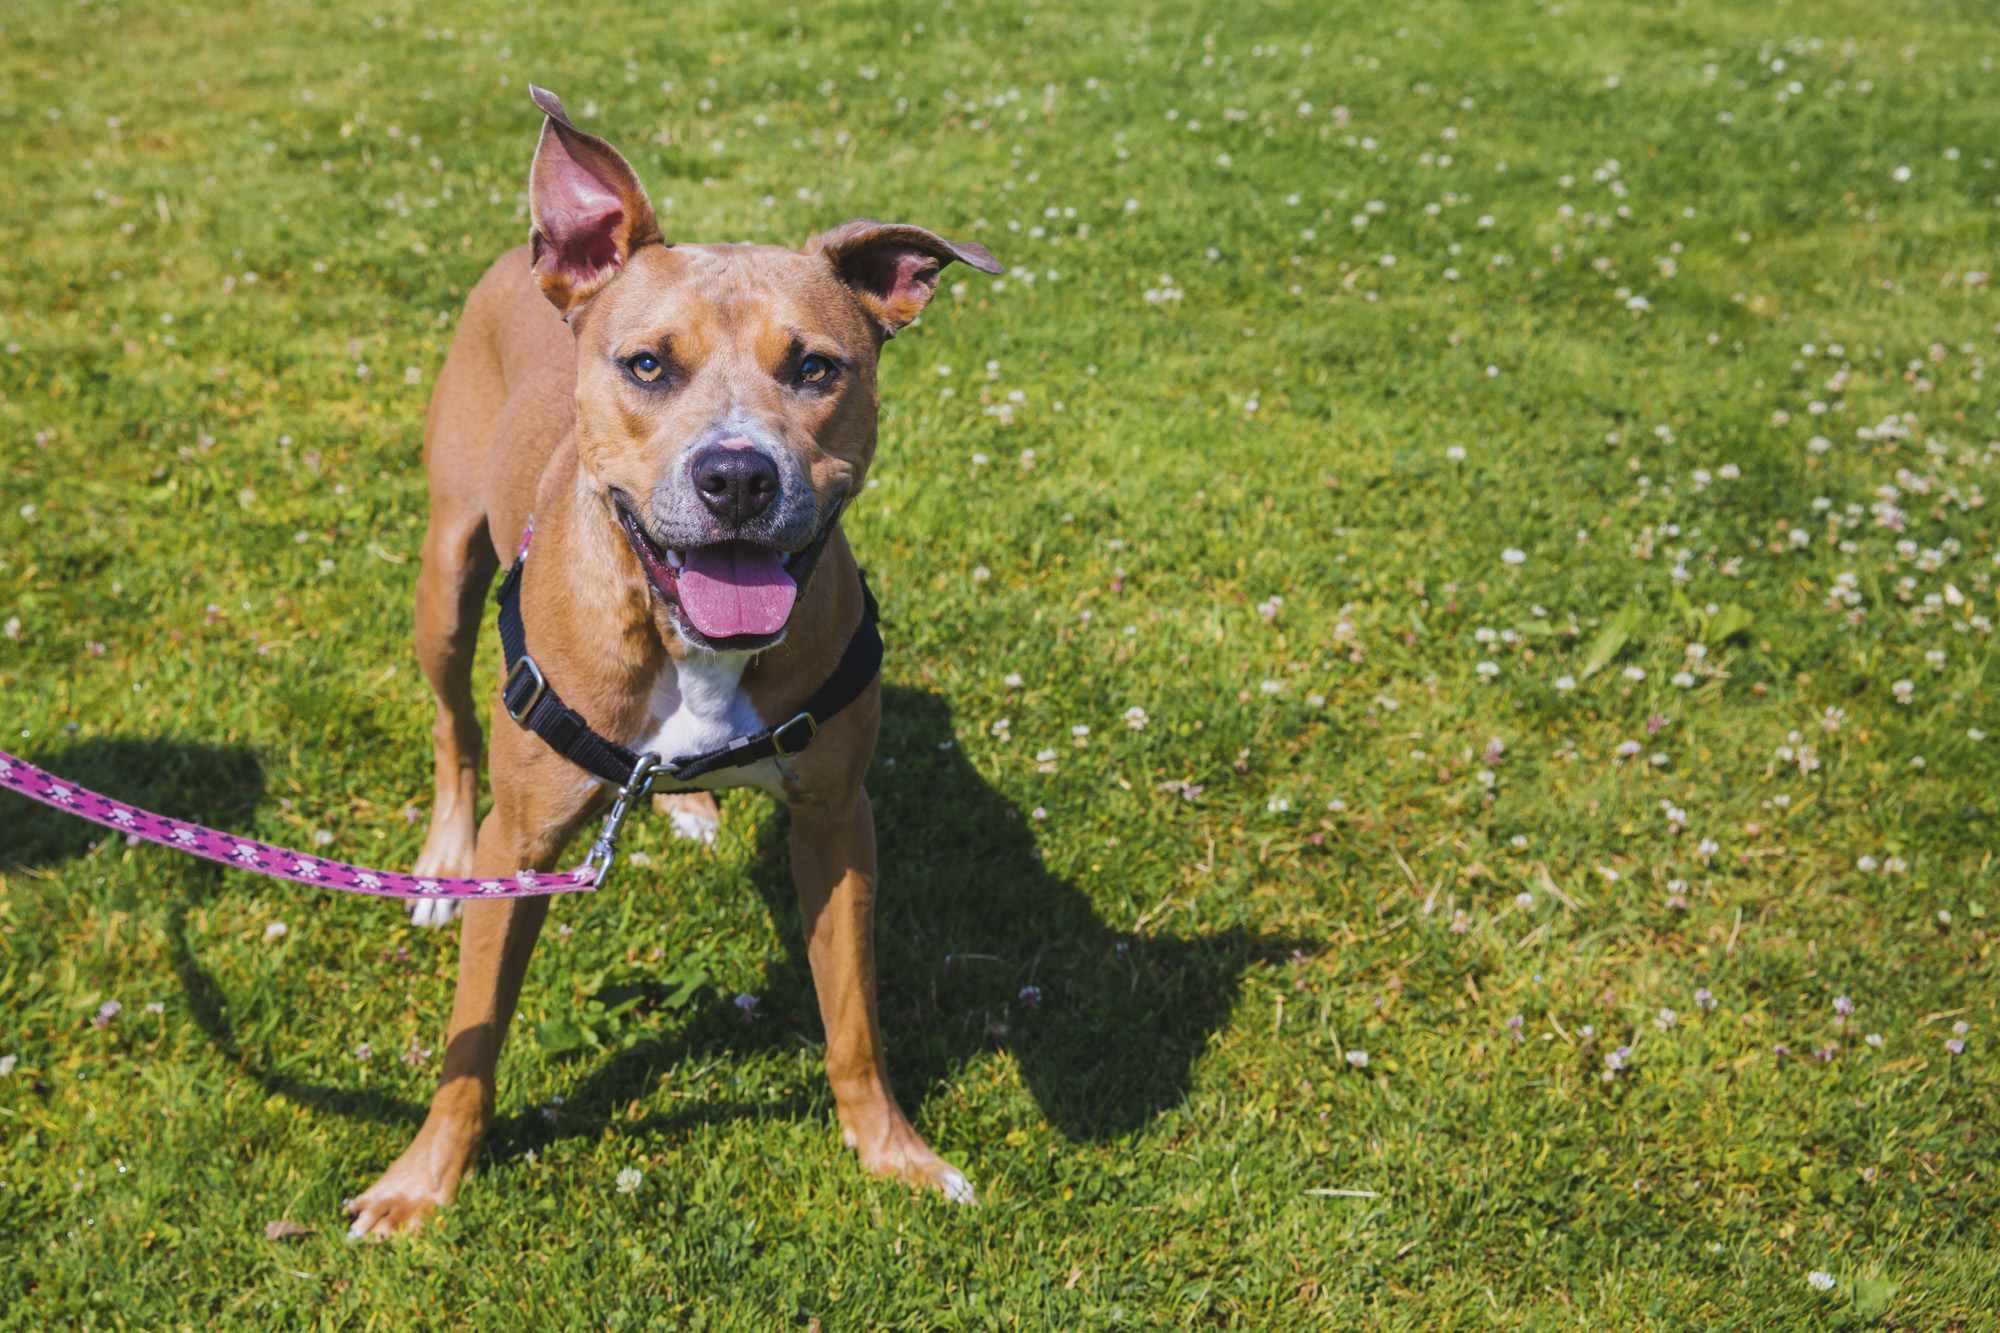 This weeks' pup is Lyric, the 1.5-year-old Pitbull Mix. Lyric is up for adoption at the Prison Pet Partnership in Gig Harbor. She is equal parts fun and playful as she is couch potato cuddle bug. She also enjoys lots of attention, playing with her chew bones, belly scratches, kisses, laying in the sunshine, running with her friends. She dislikes when people she doesn't know stare at her or lean over her head. Lyric is looking for a family and if you or someone you know are interested in meeting this sweet babe, email Cait at info@prisonpetpartnership.org. You can also learn a little more about Prison Pet Partnership by visiting their Facebook page or instagram, @prison_pet_partnership.{ }The Seattle RUFFined Spotlight is a weekly profile of local pets living and loving life in the PNW. If you or someone you know has a pet you'd like featured, email us at hello@seattlerefined.com or tag #SeattleRUFFined and your furbaby could be the next spotlighted! (Image: Sunita Martini / Seattle Refined).